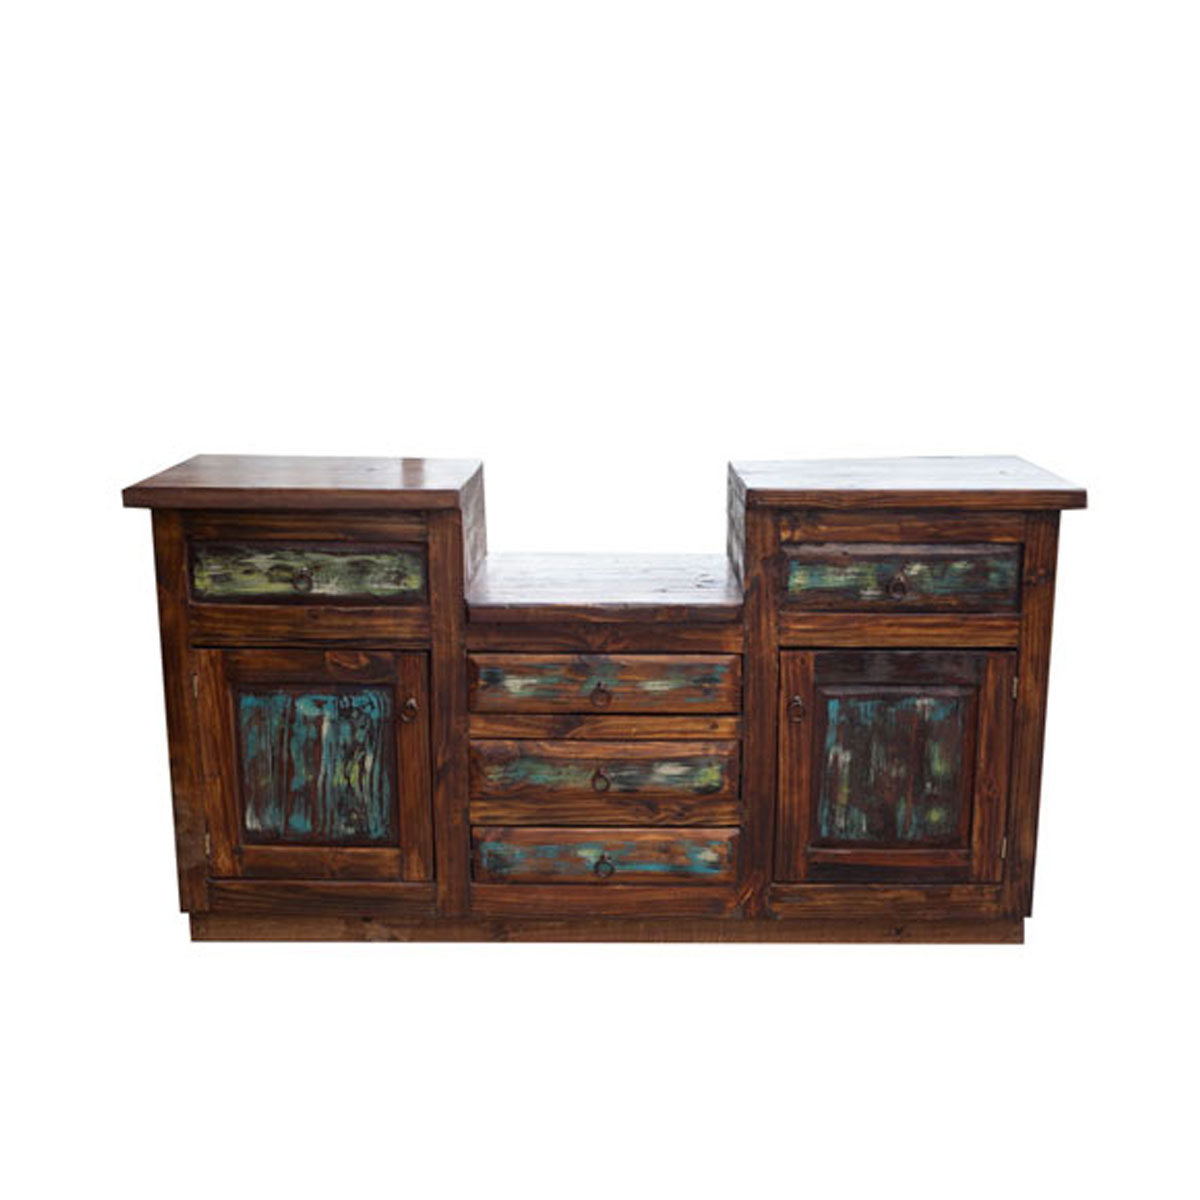 Buy Colored Barnwood Double Sink Vanity For Master